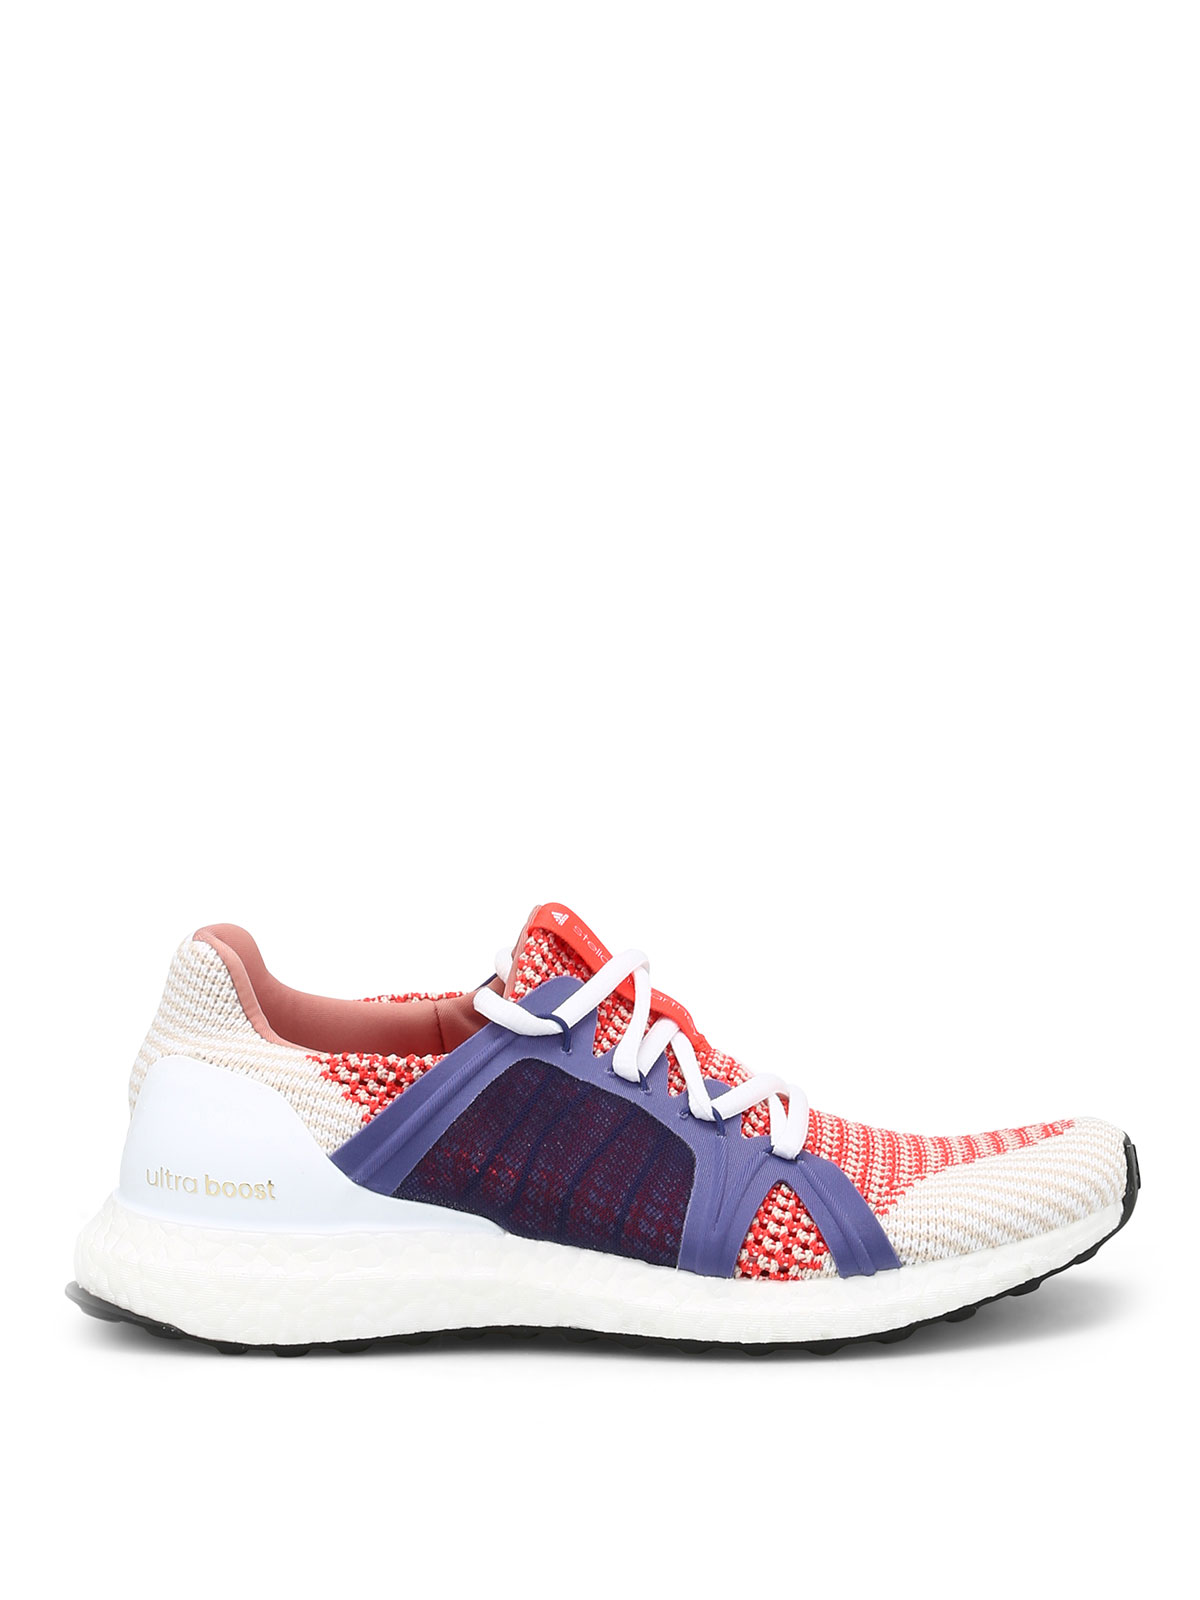 ultra boost running sneakers by adidas by stella mccartney. Black Bedroom Furniture Sets. Home Design Ideas